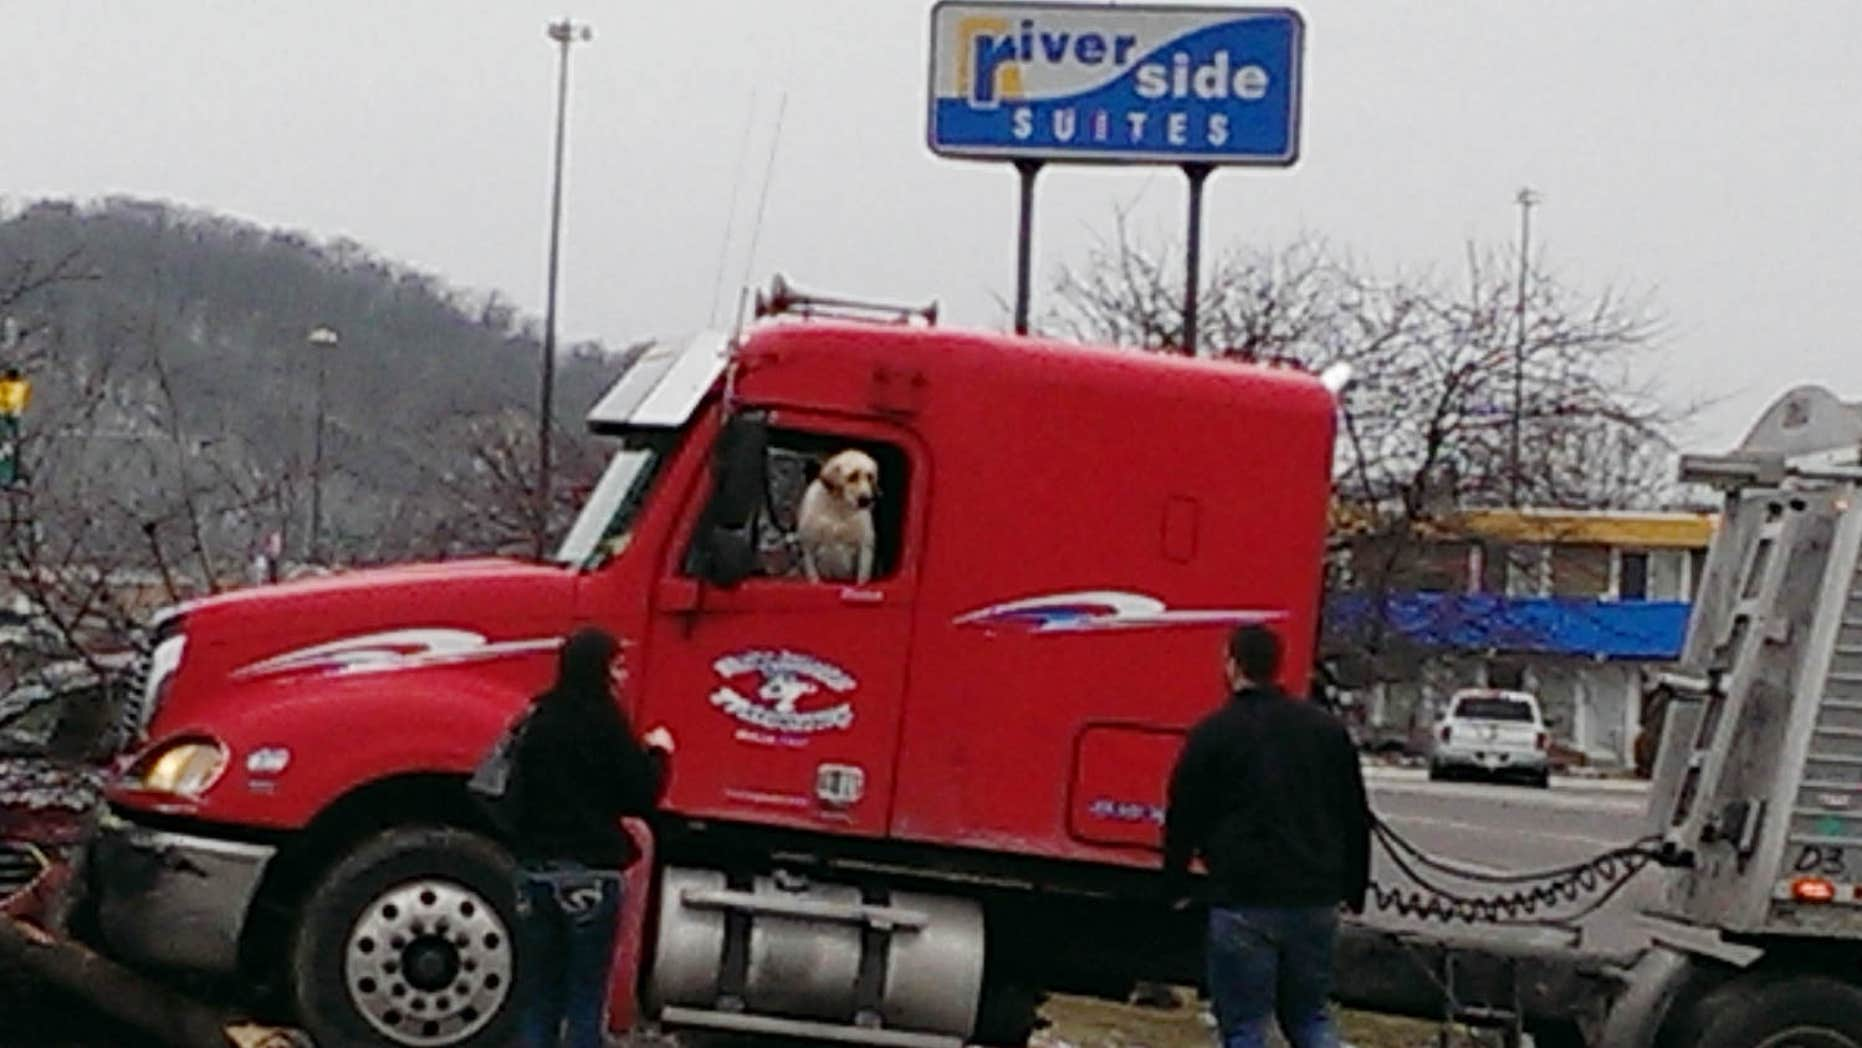 This Friday, March 4, 2016 photo provided by David Stegora shows a semi-truck with a dog in the driver's seat that crashed at a convenience store in Mankato, Minn.